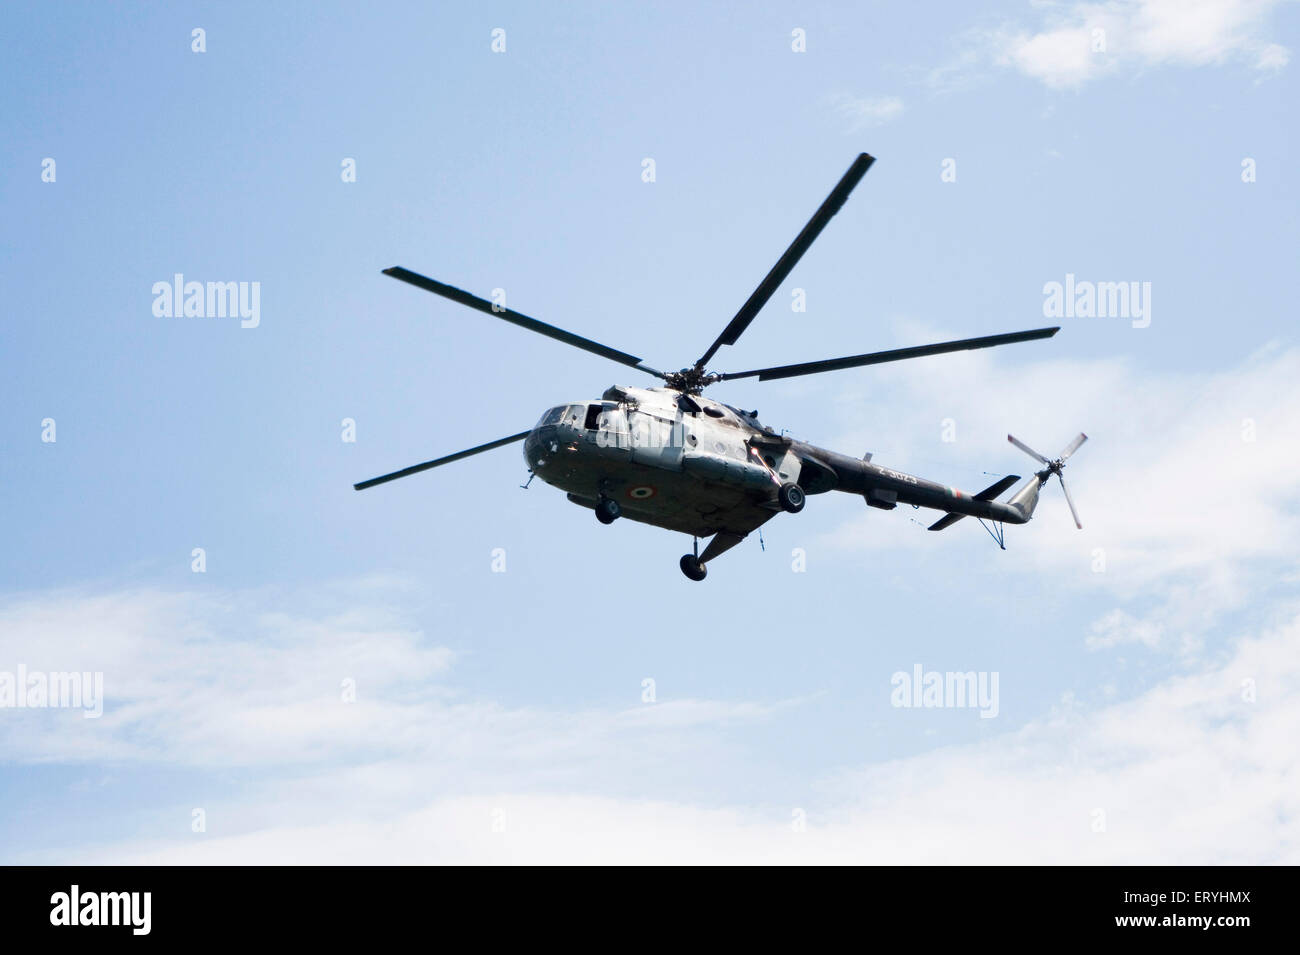 Helicopter ; India - Stock Image